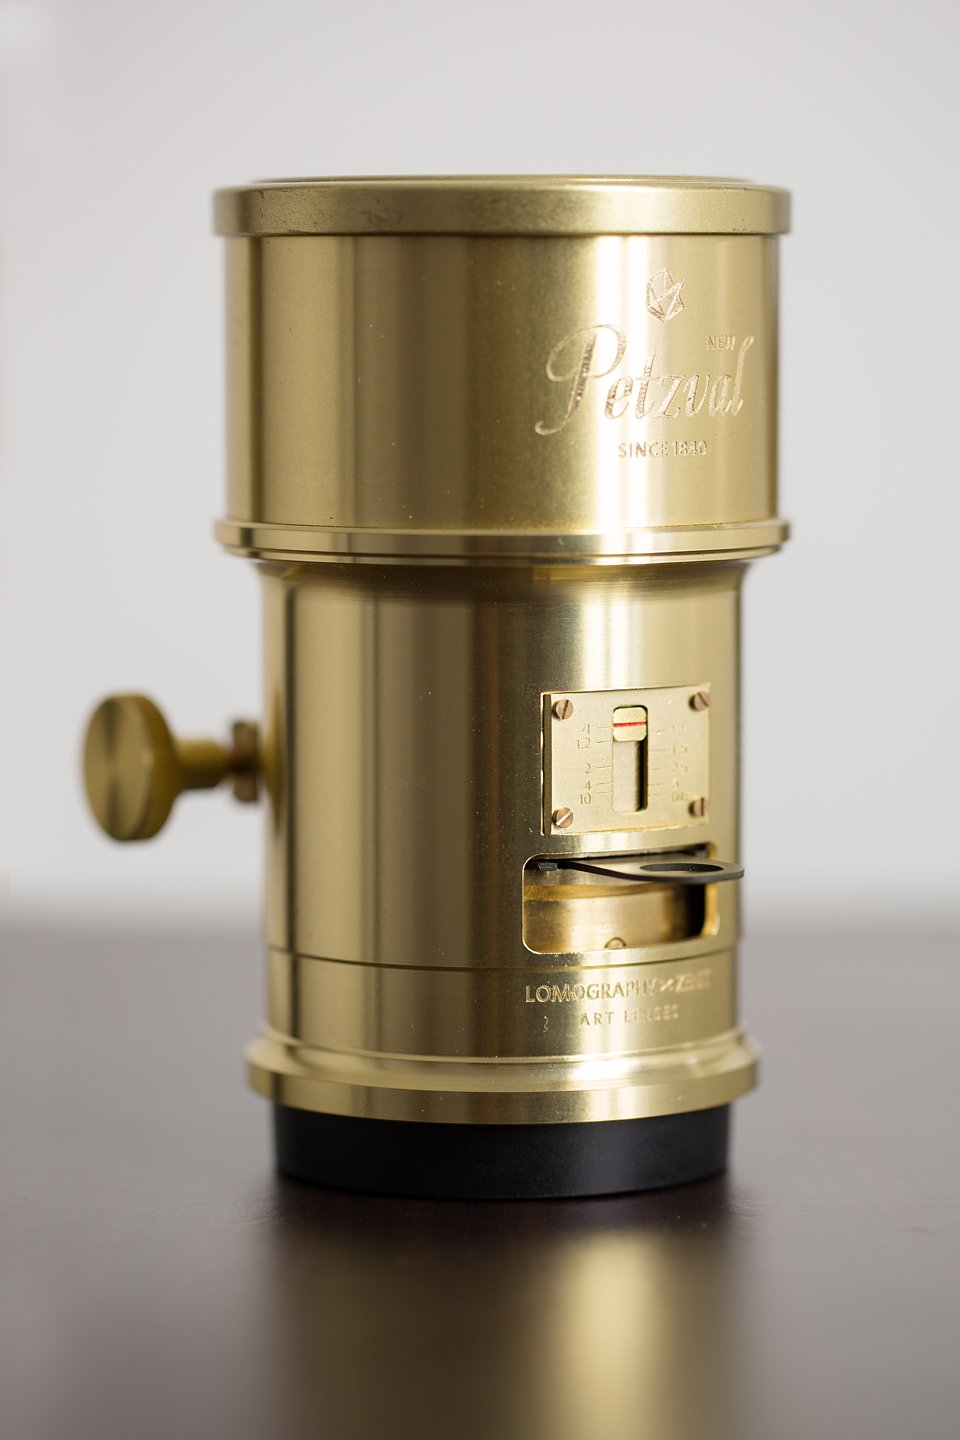 The Lomography Petzval brass Art lens